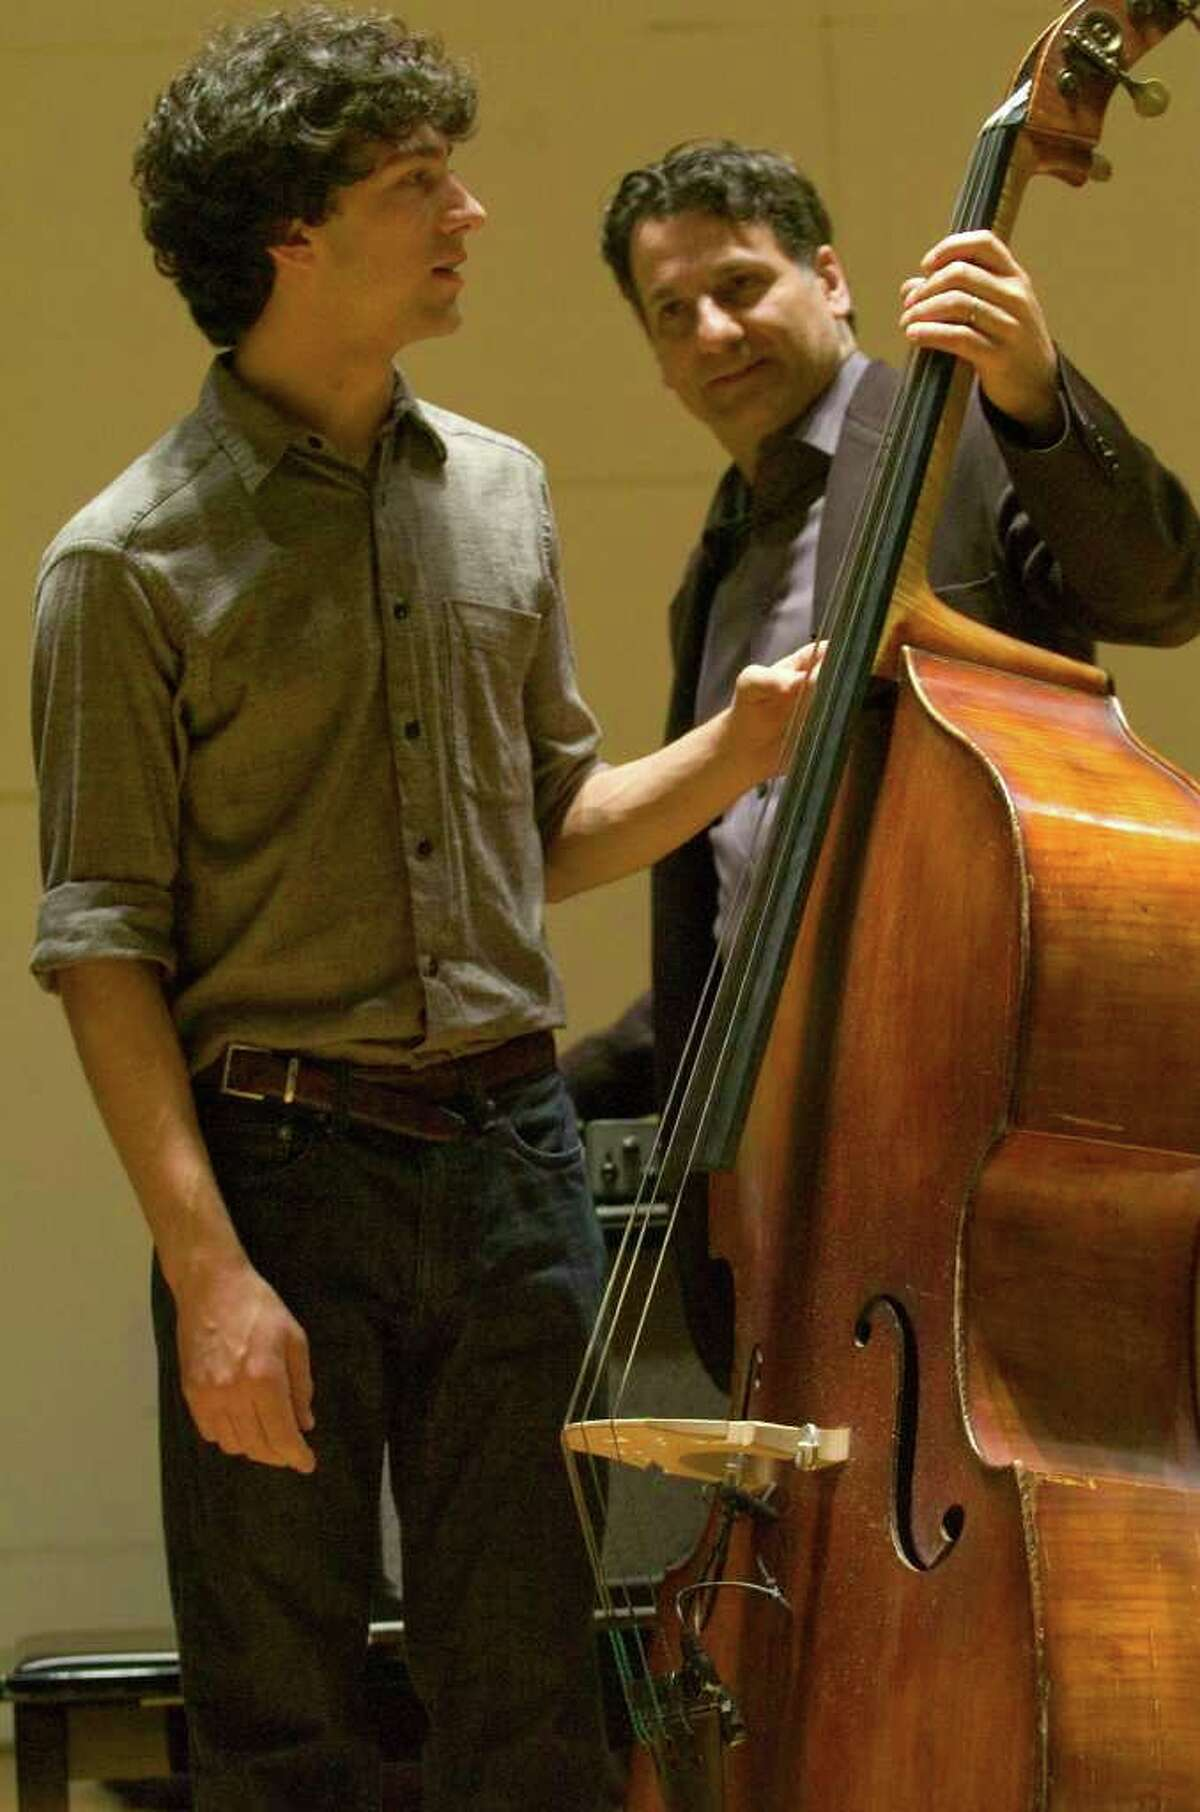 Jazz musician John Patitucci, right, hands Western Connecticut State University student Silvain Castellano his upright bass to play during Patitucci's visit to WestConn on Friday, Dec. 2, 2011.